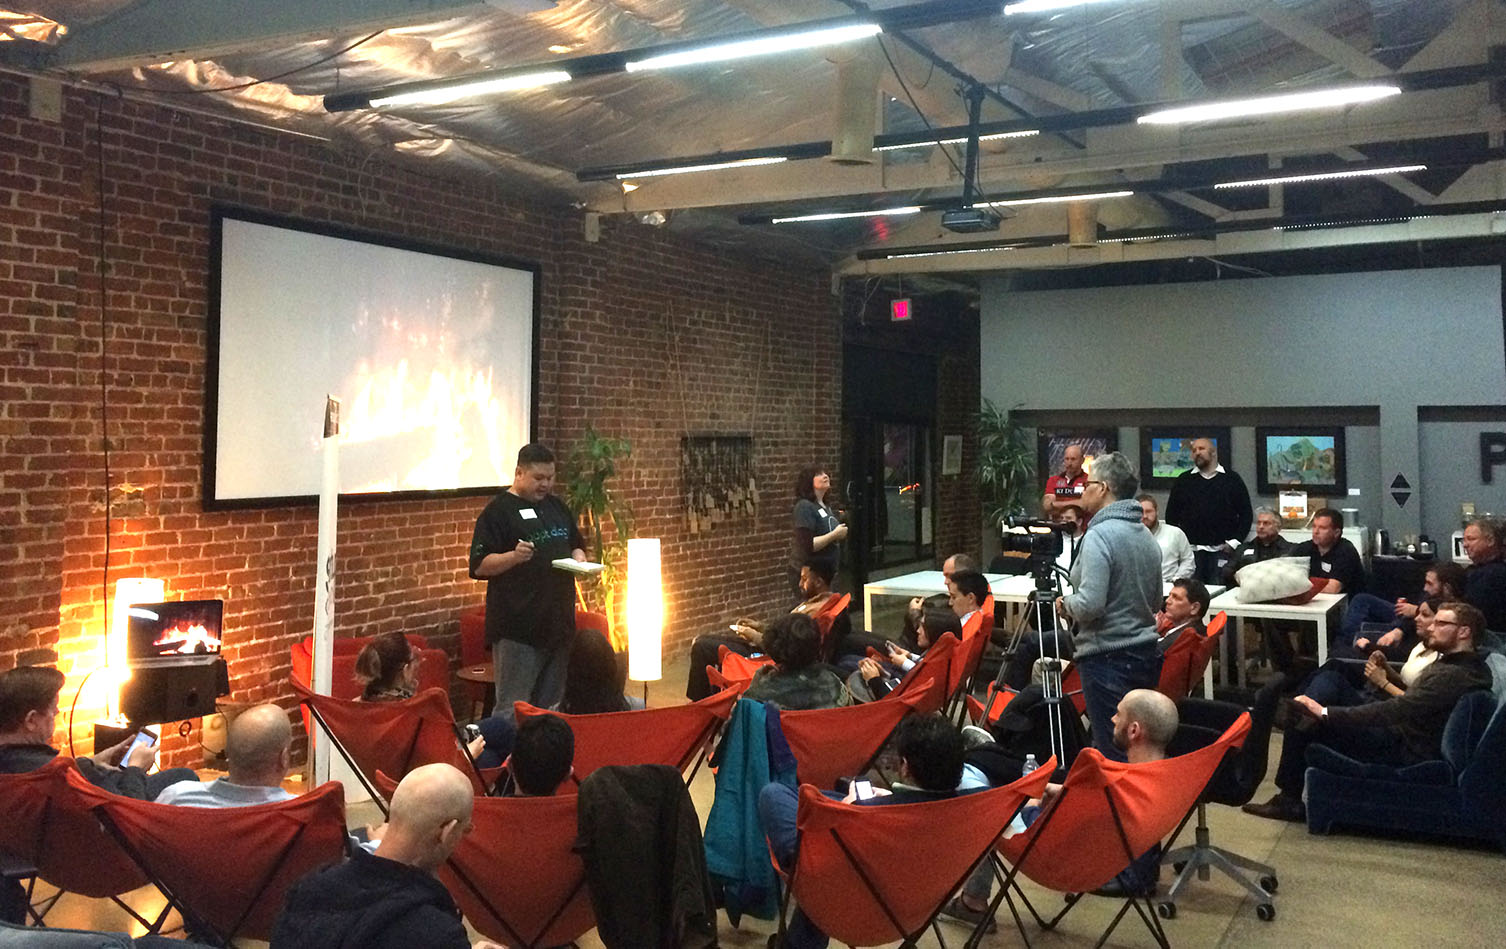 7 Startup Nuggets from Last Night's Sacramento Startup Grind